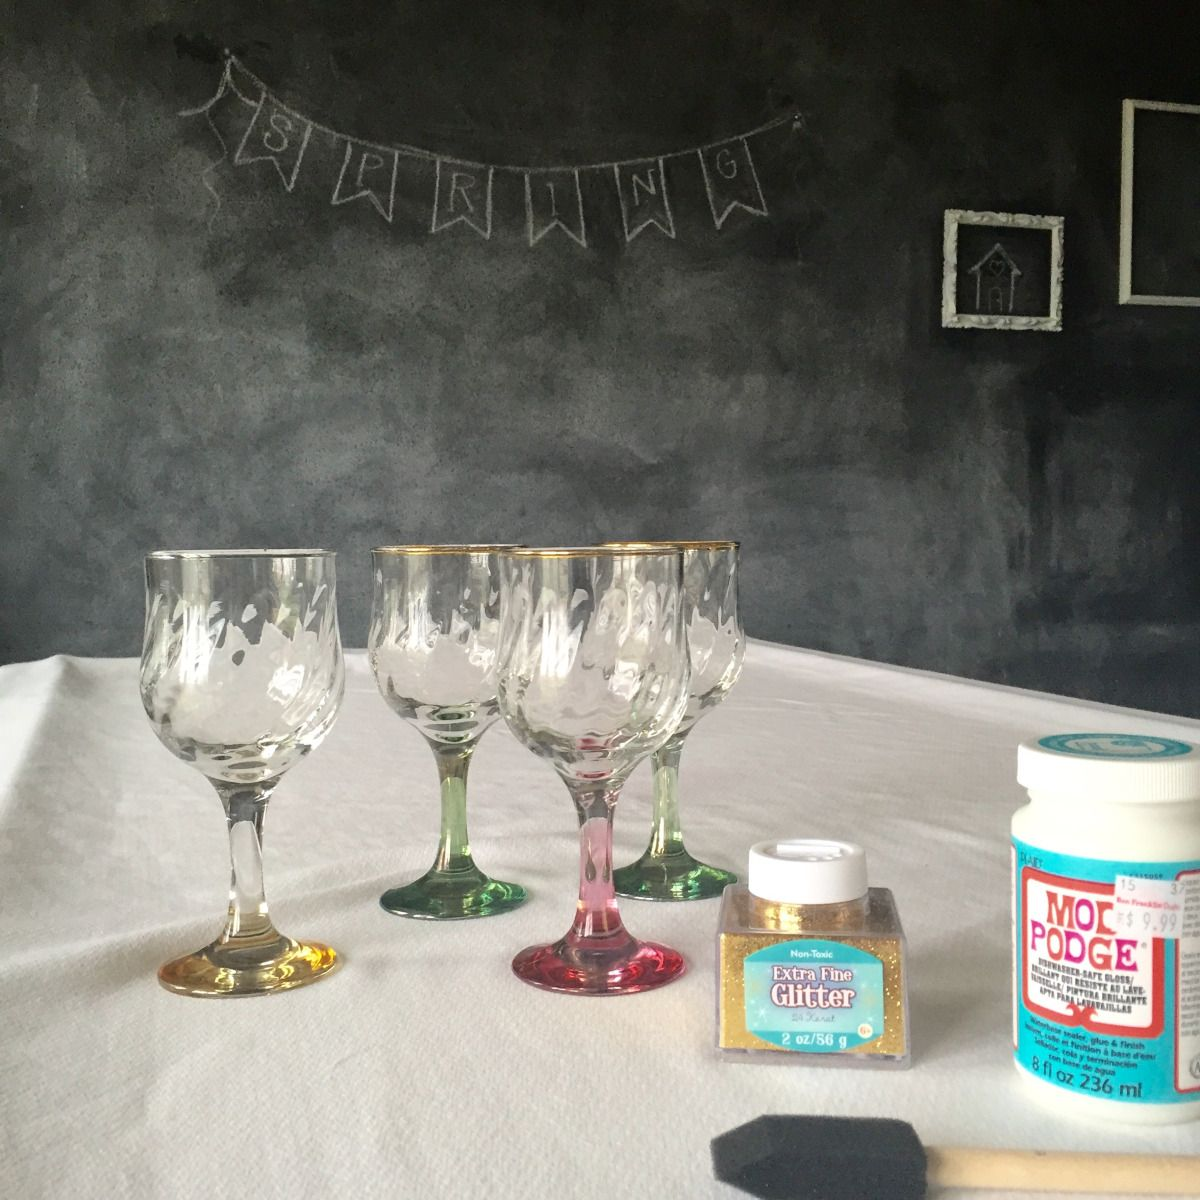 Uncategorized Dishwasher Safe Paint For Glass glittered wine glasses tutorials glass and craft glasses